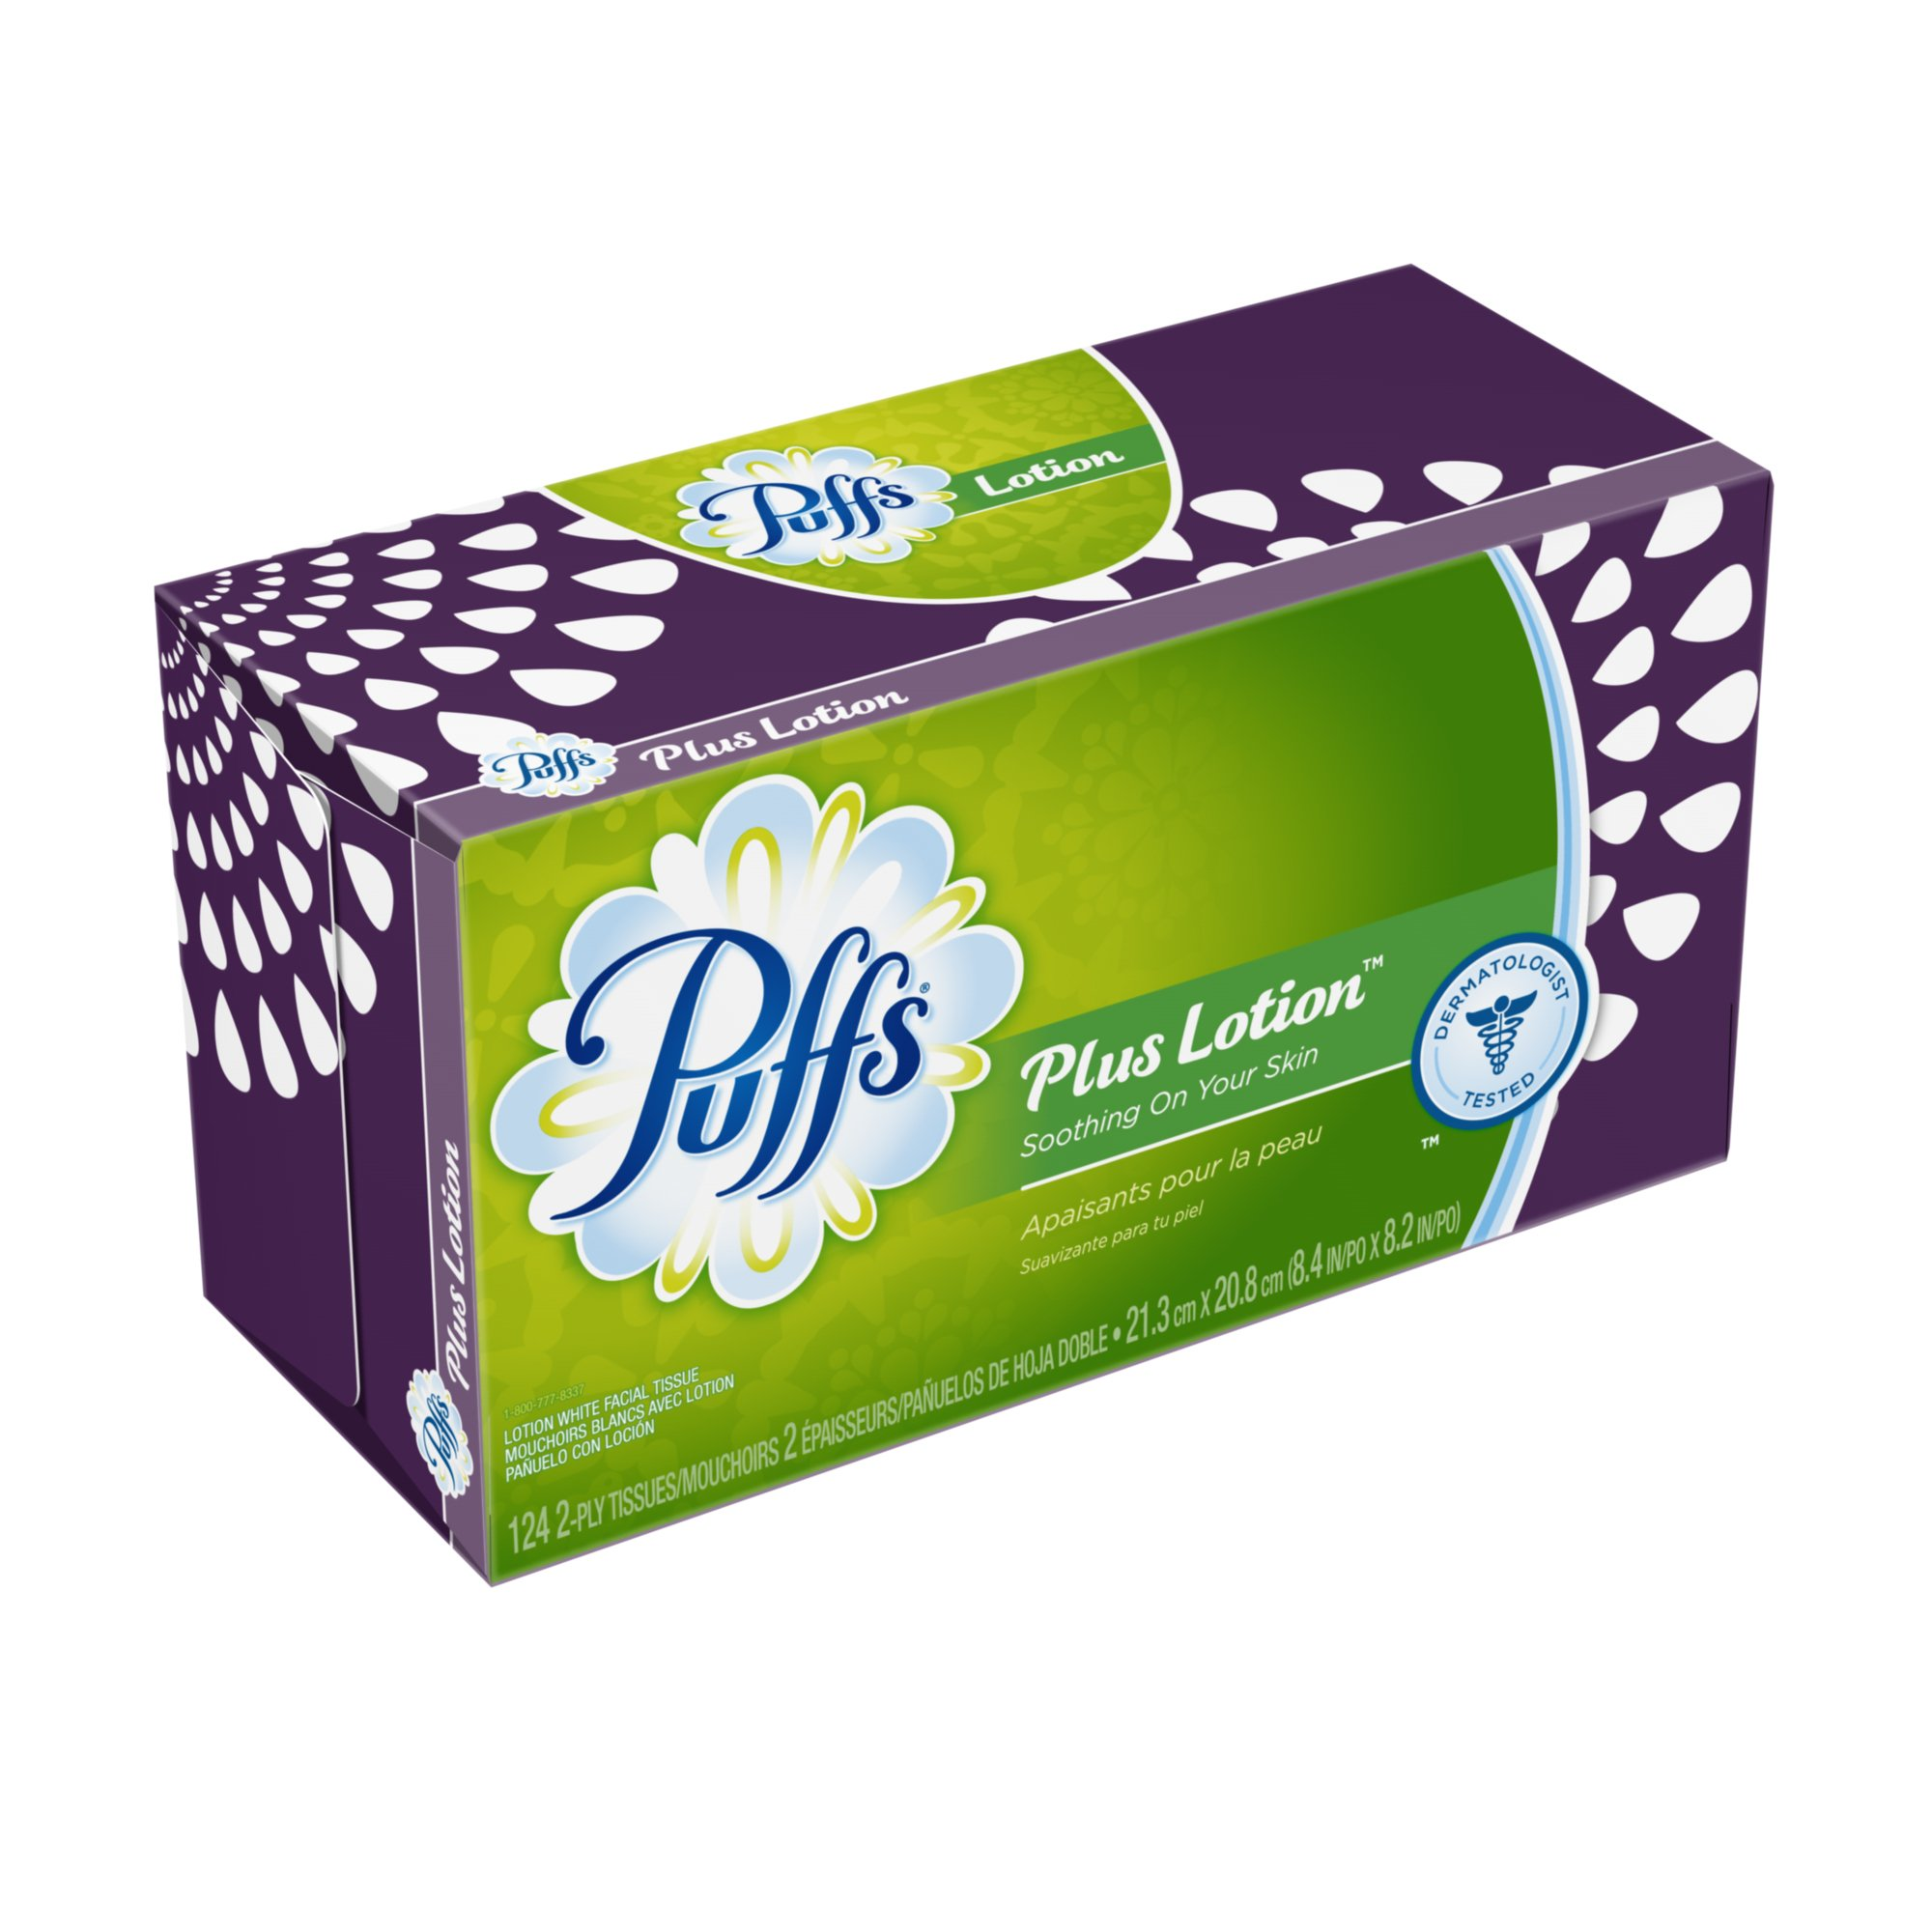 Puffs Plus Lotion Facial Tissues;124 Tissues Per Box (Pack of 24) (